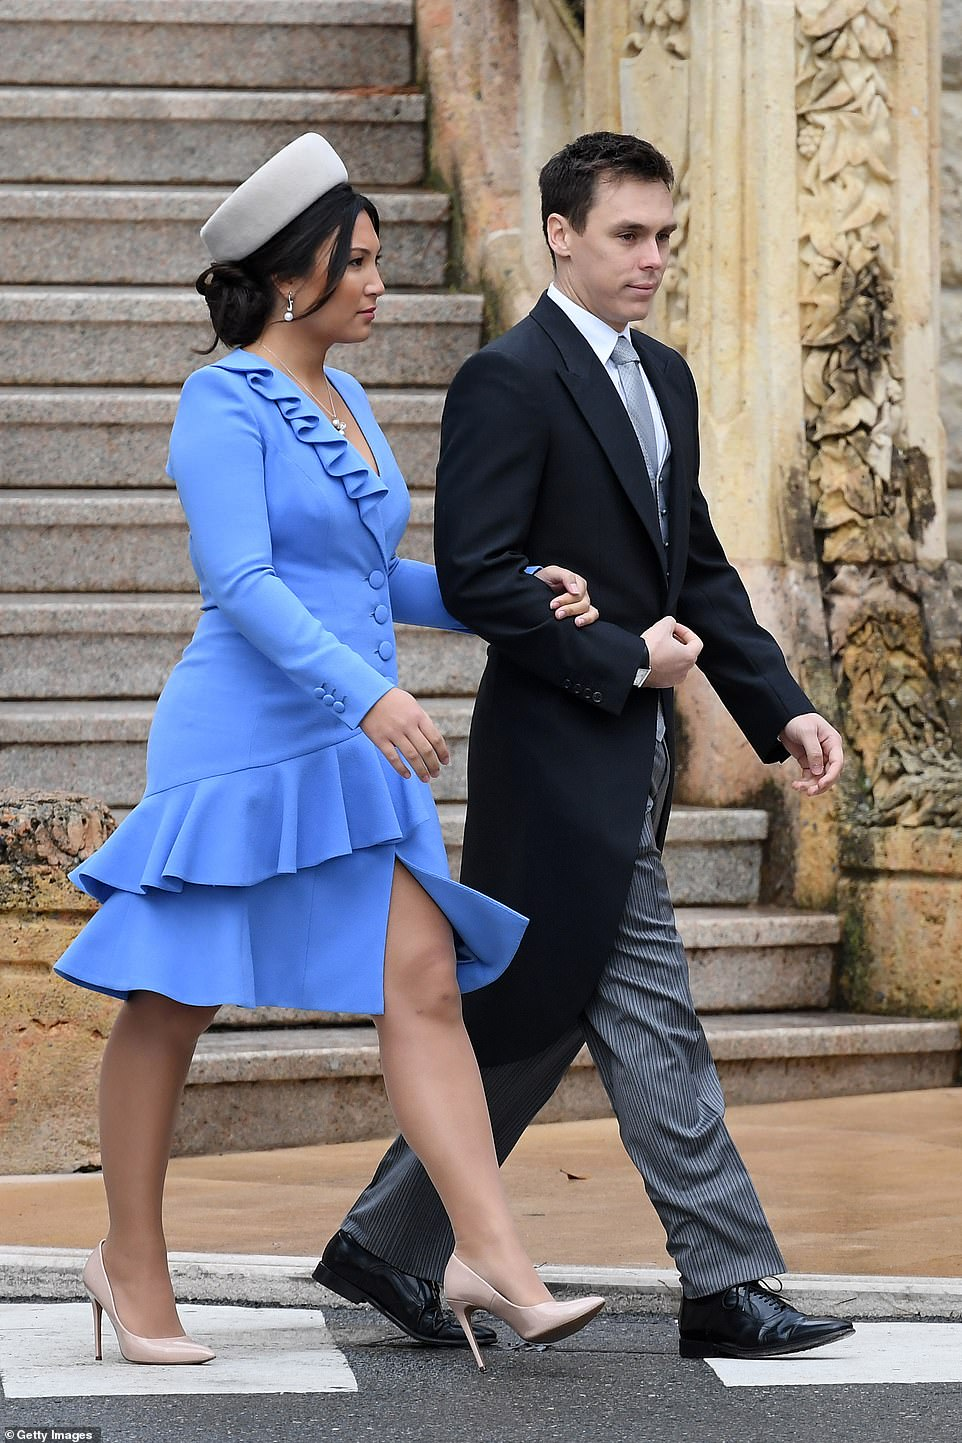 Braving the cold, Marie brought a splash of colour in a bright blue asymmetric frock , nude heels and a fascinator as she arrived with Louis